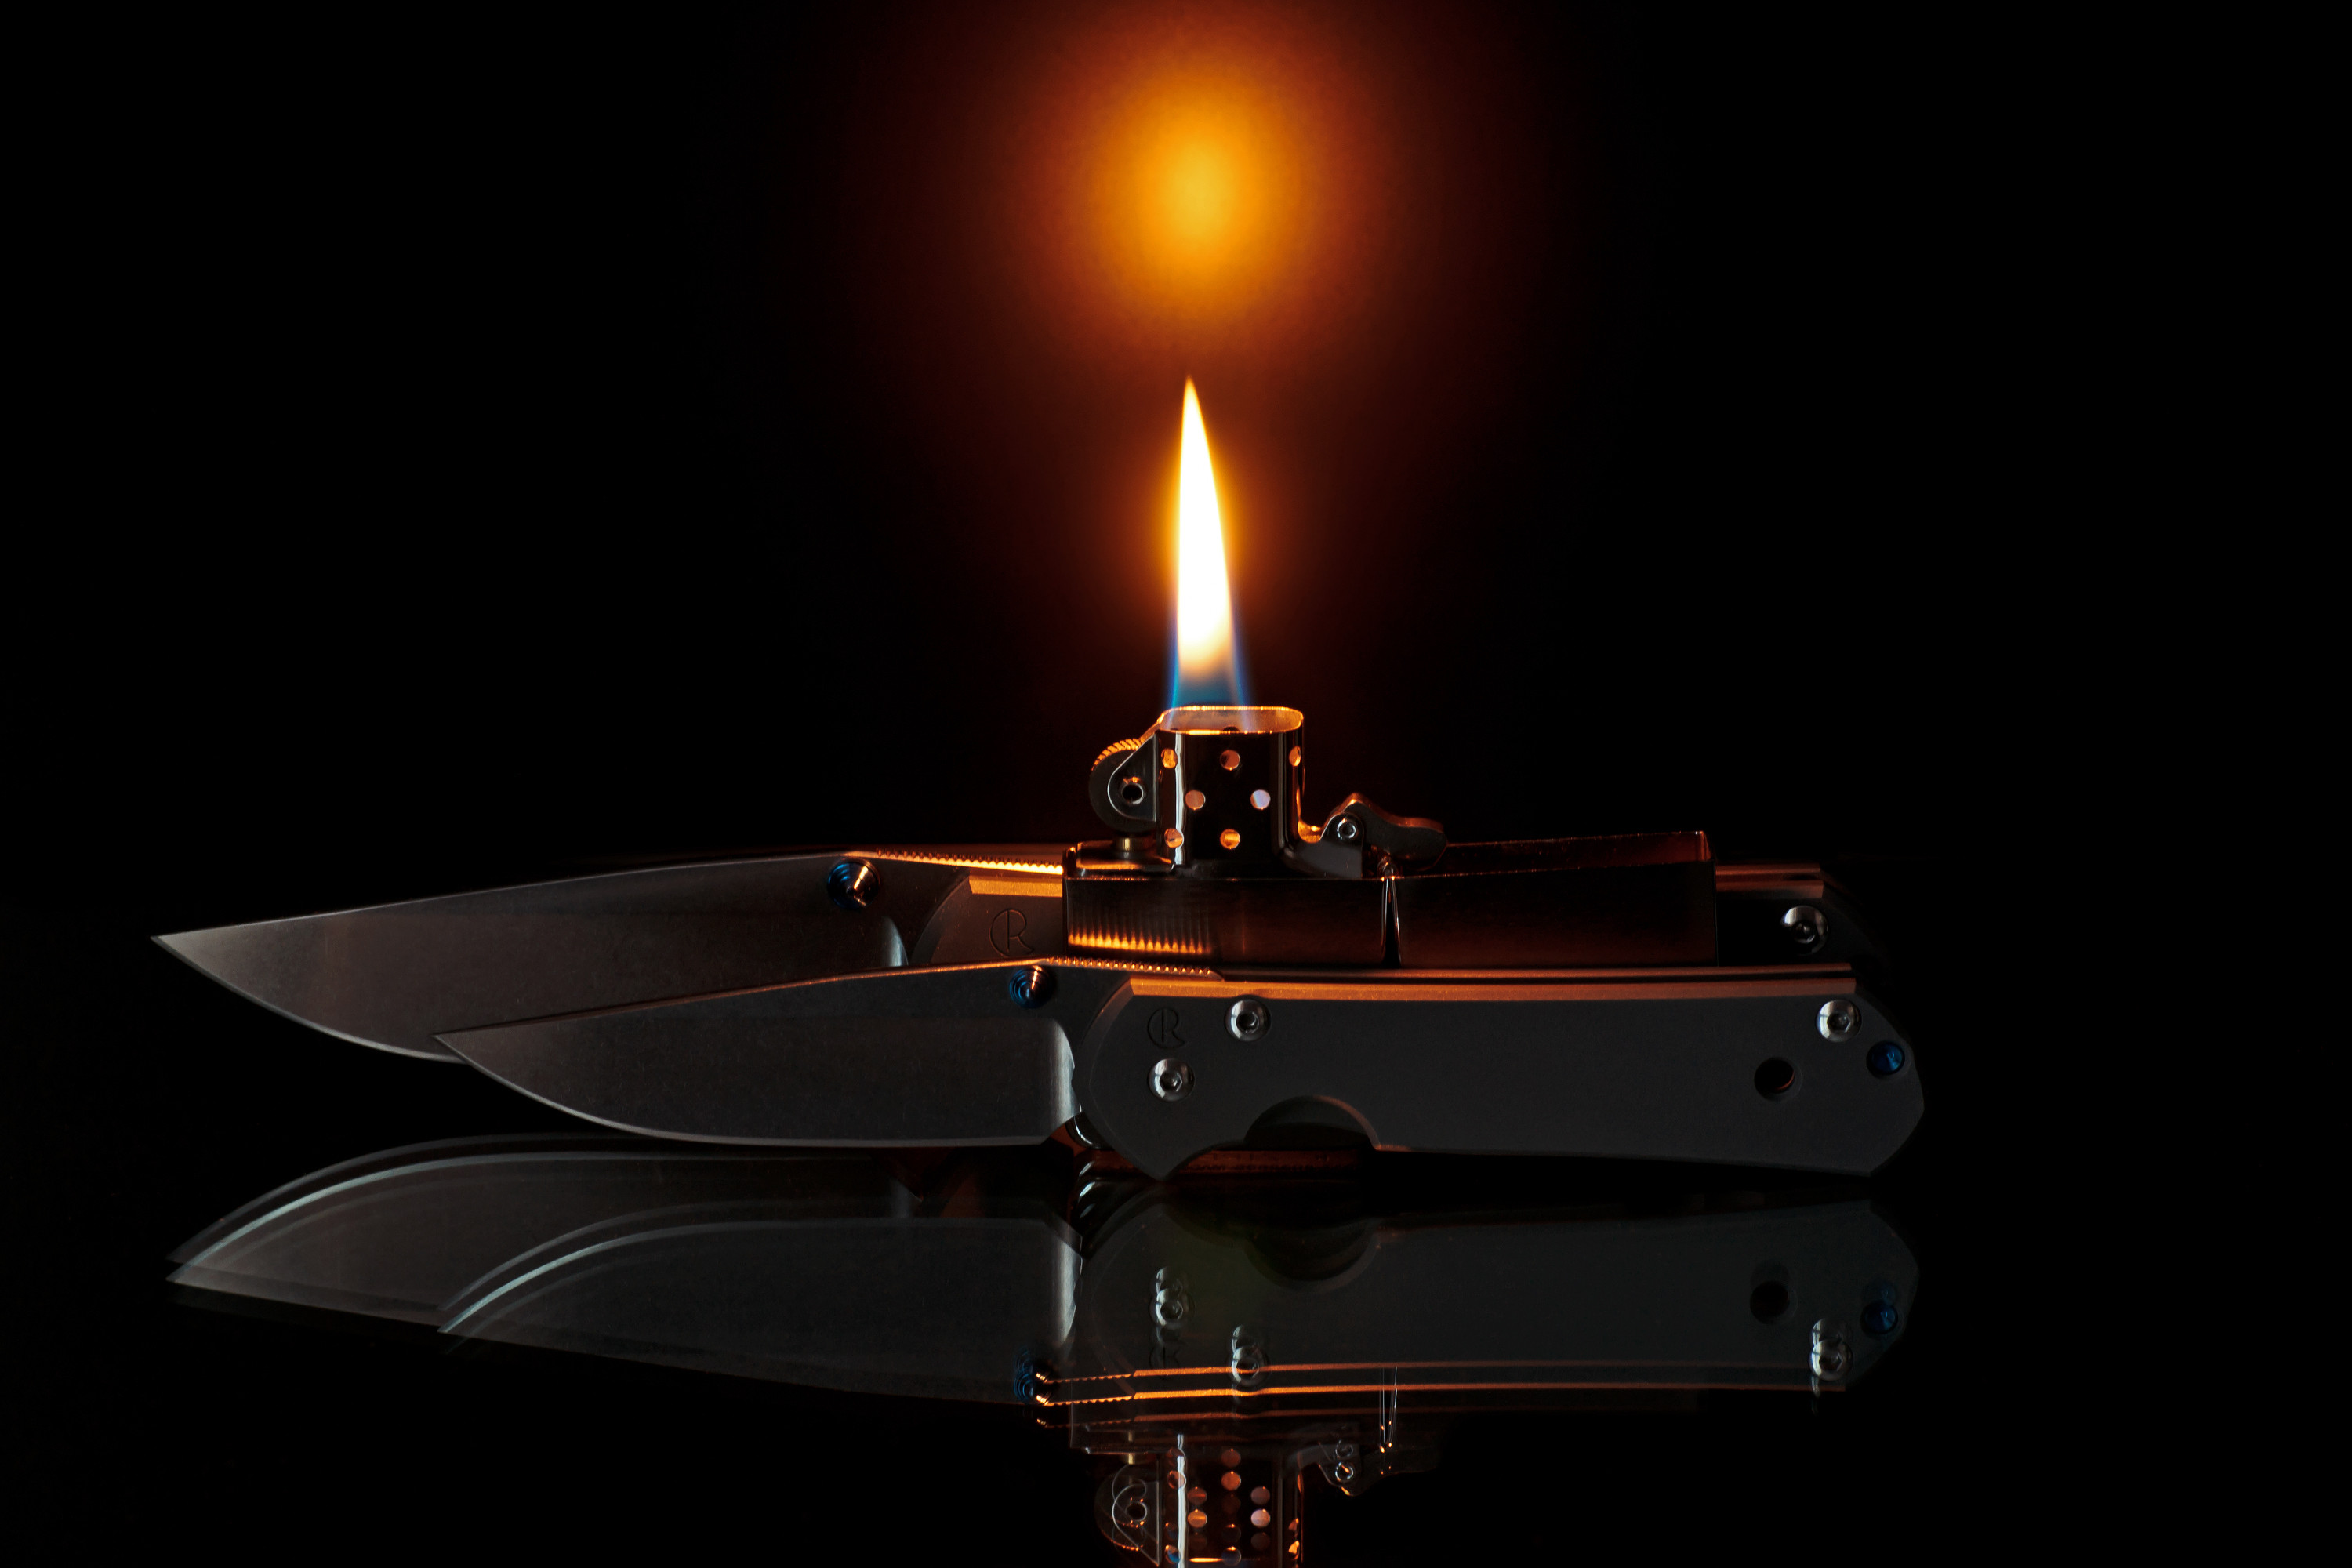 Photography – Fire Knife Sebenza Lighter Flame Wallpaper